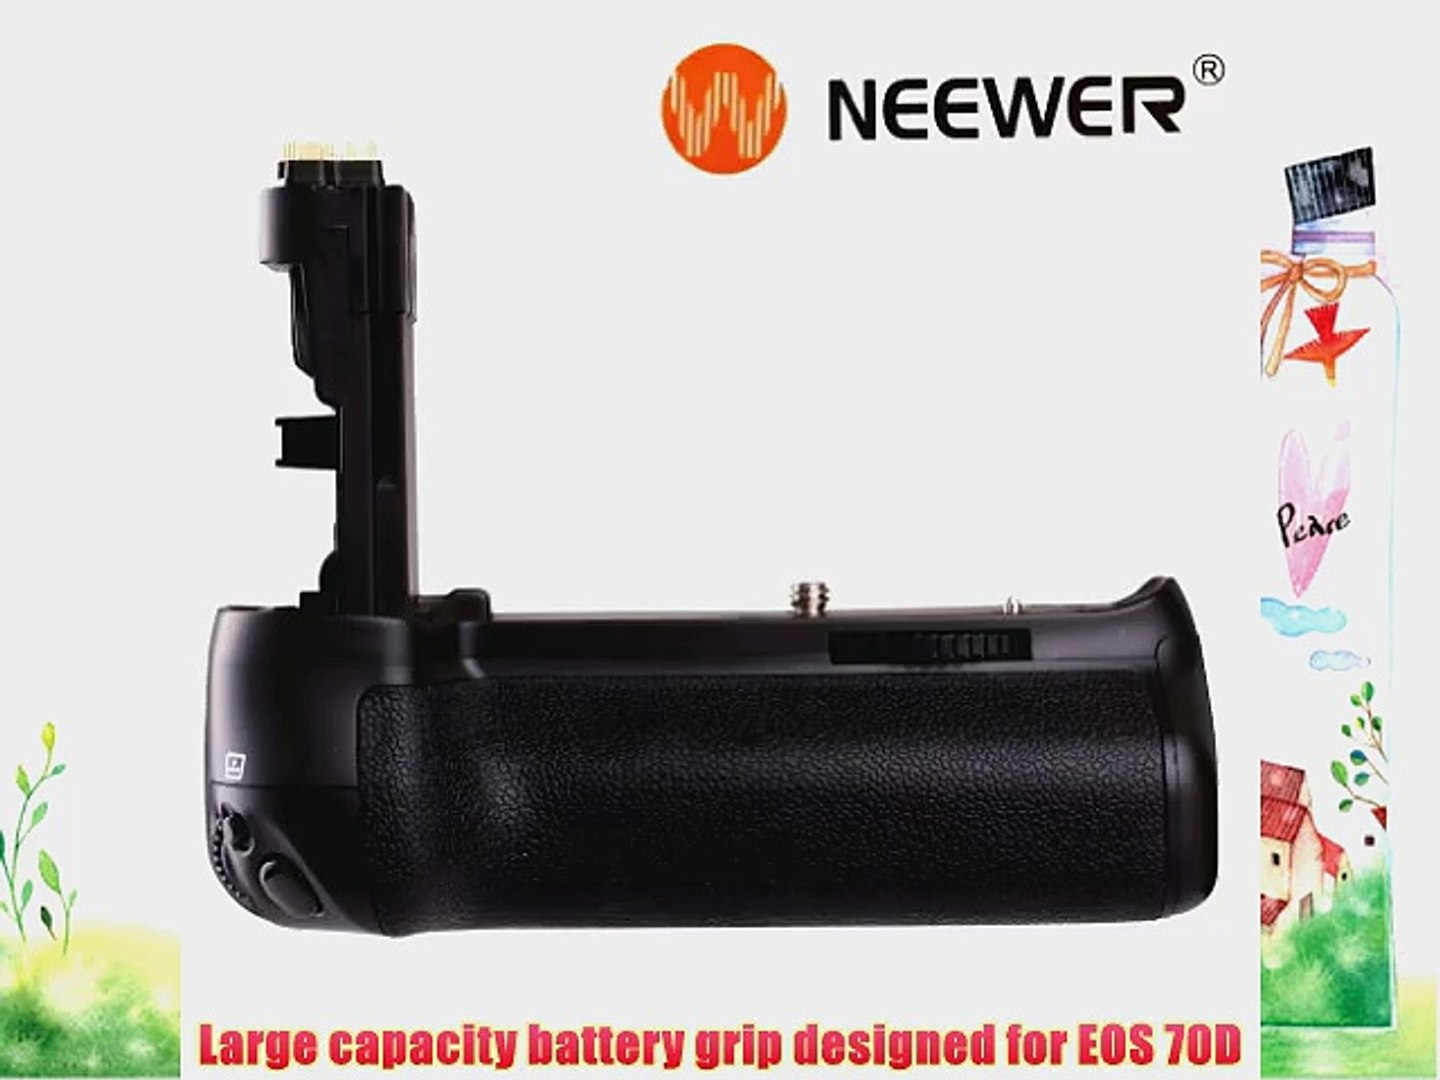 NEEWER BG-70D Battery Grip for EOS 70D Digital SLR Camera with 2 LE-P6 Batteries